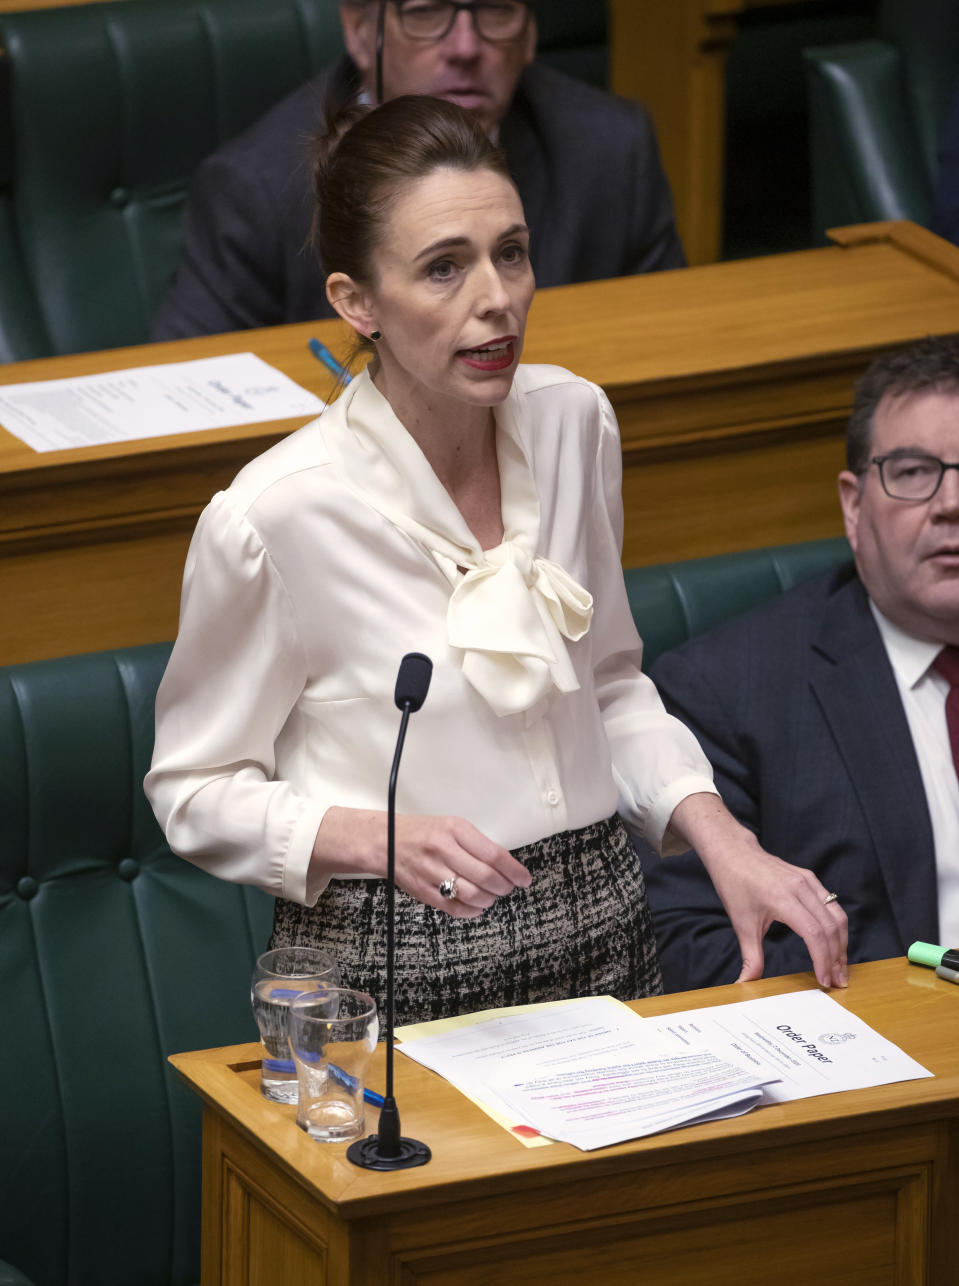 New Zealand's Prime Minister Jacinda Ardern moves a motion in the Parliament House in Wellington, New Zealand, to declare a climate emergency, Wednesday, Dec. 2, 2020. Joining more than 30 other countries around the world, New Zealand took the symbolic step of declaring a climate emergency. (Mark Mitchell/New Zealand Herald via AP)